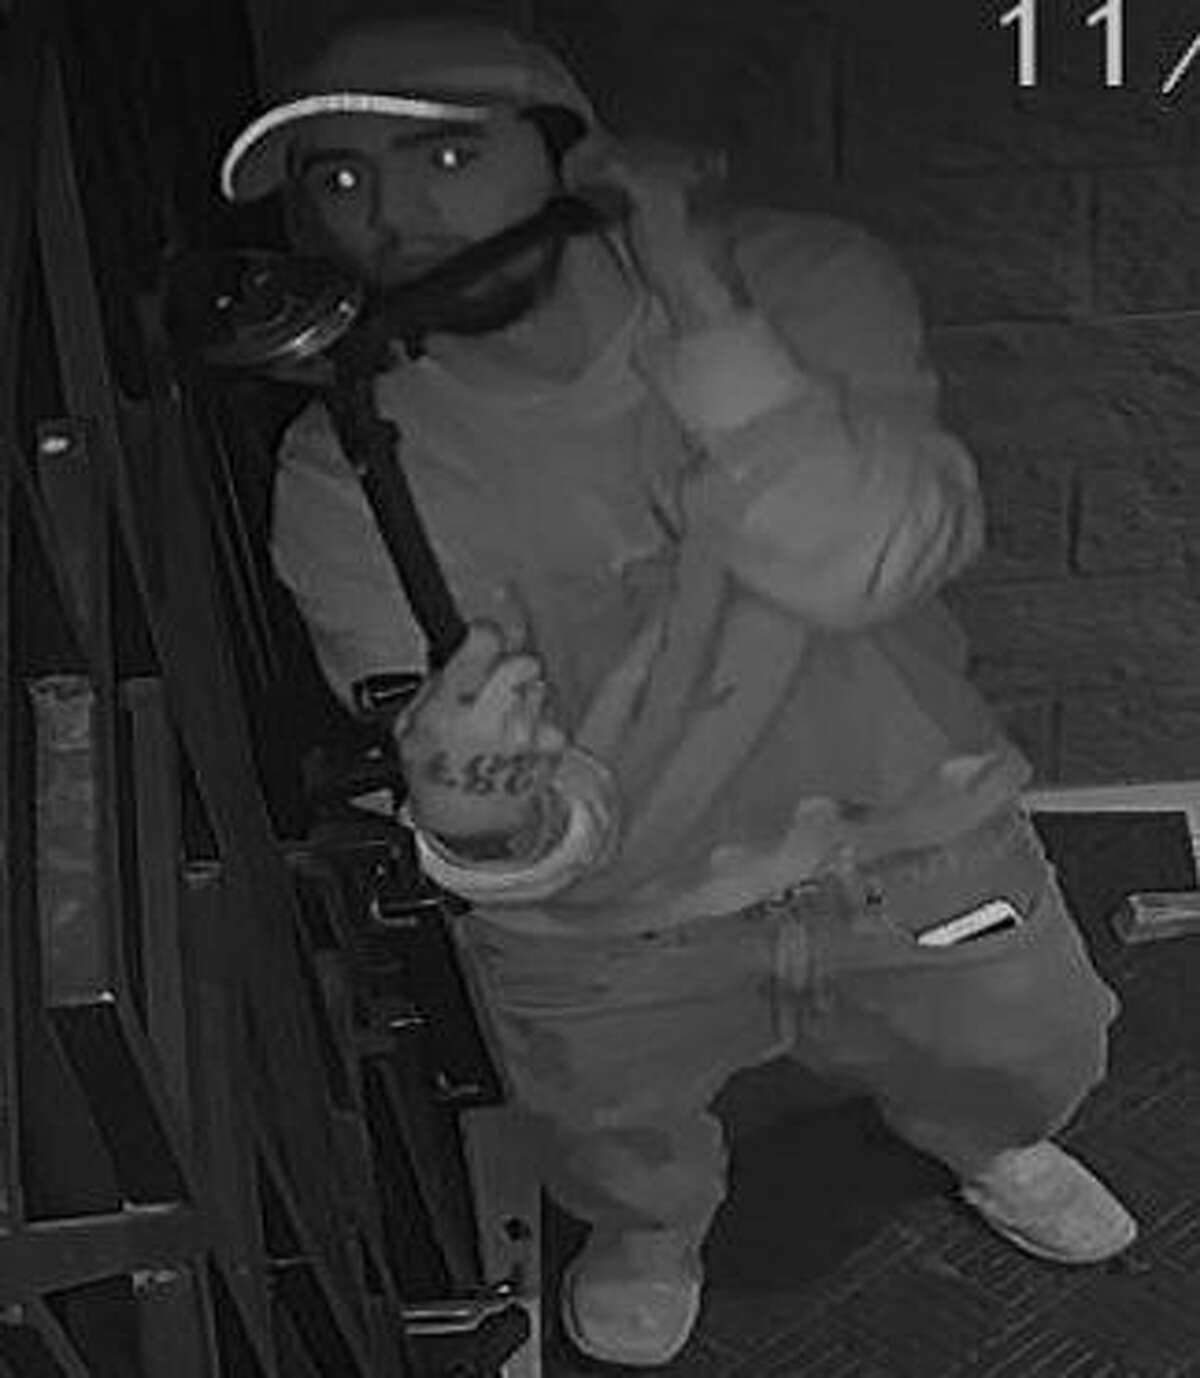 The suspects broke into the Ignite Church in the 700 block of SW 24th St. at about 4 a.m. on Nov. 17 and took three Mac desktop computers and a 55 inch television. They then fled in a white vehicle.